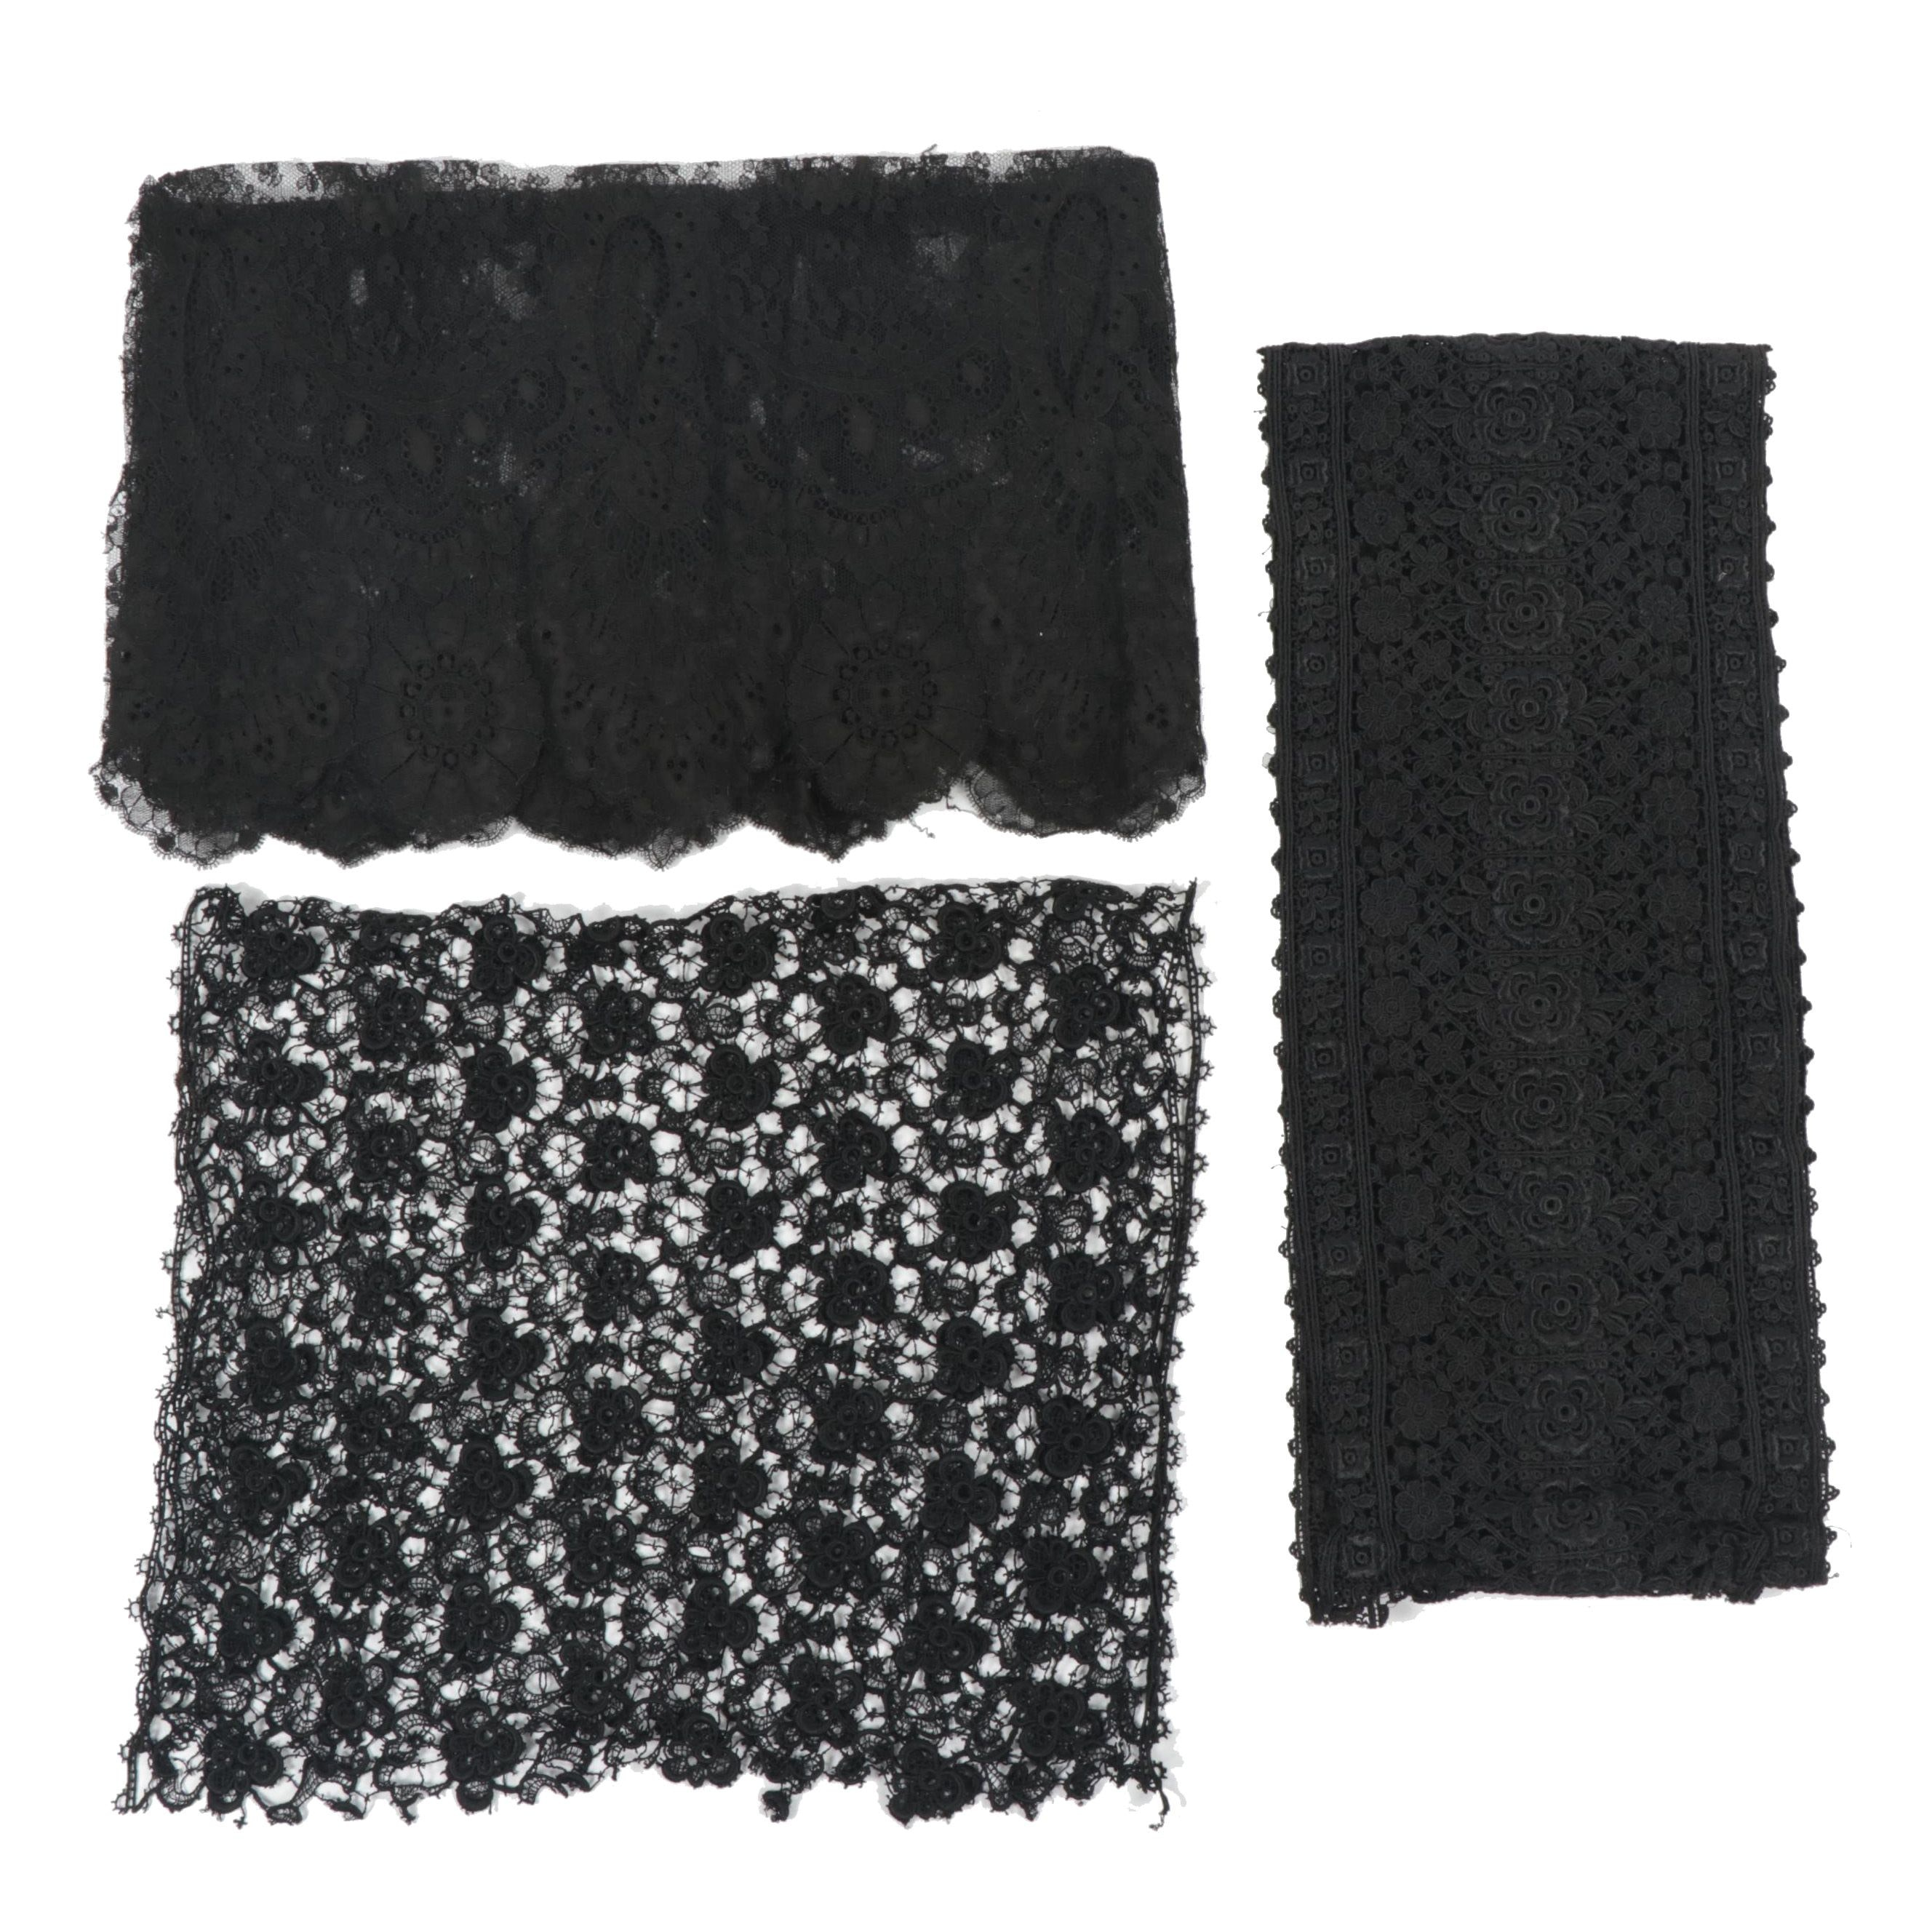 Lace Fabric Pieces, Early 20th Century